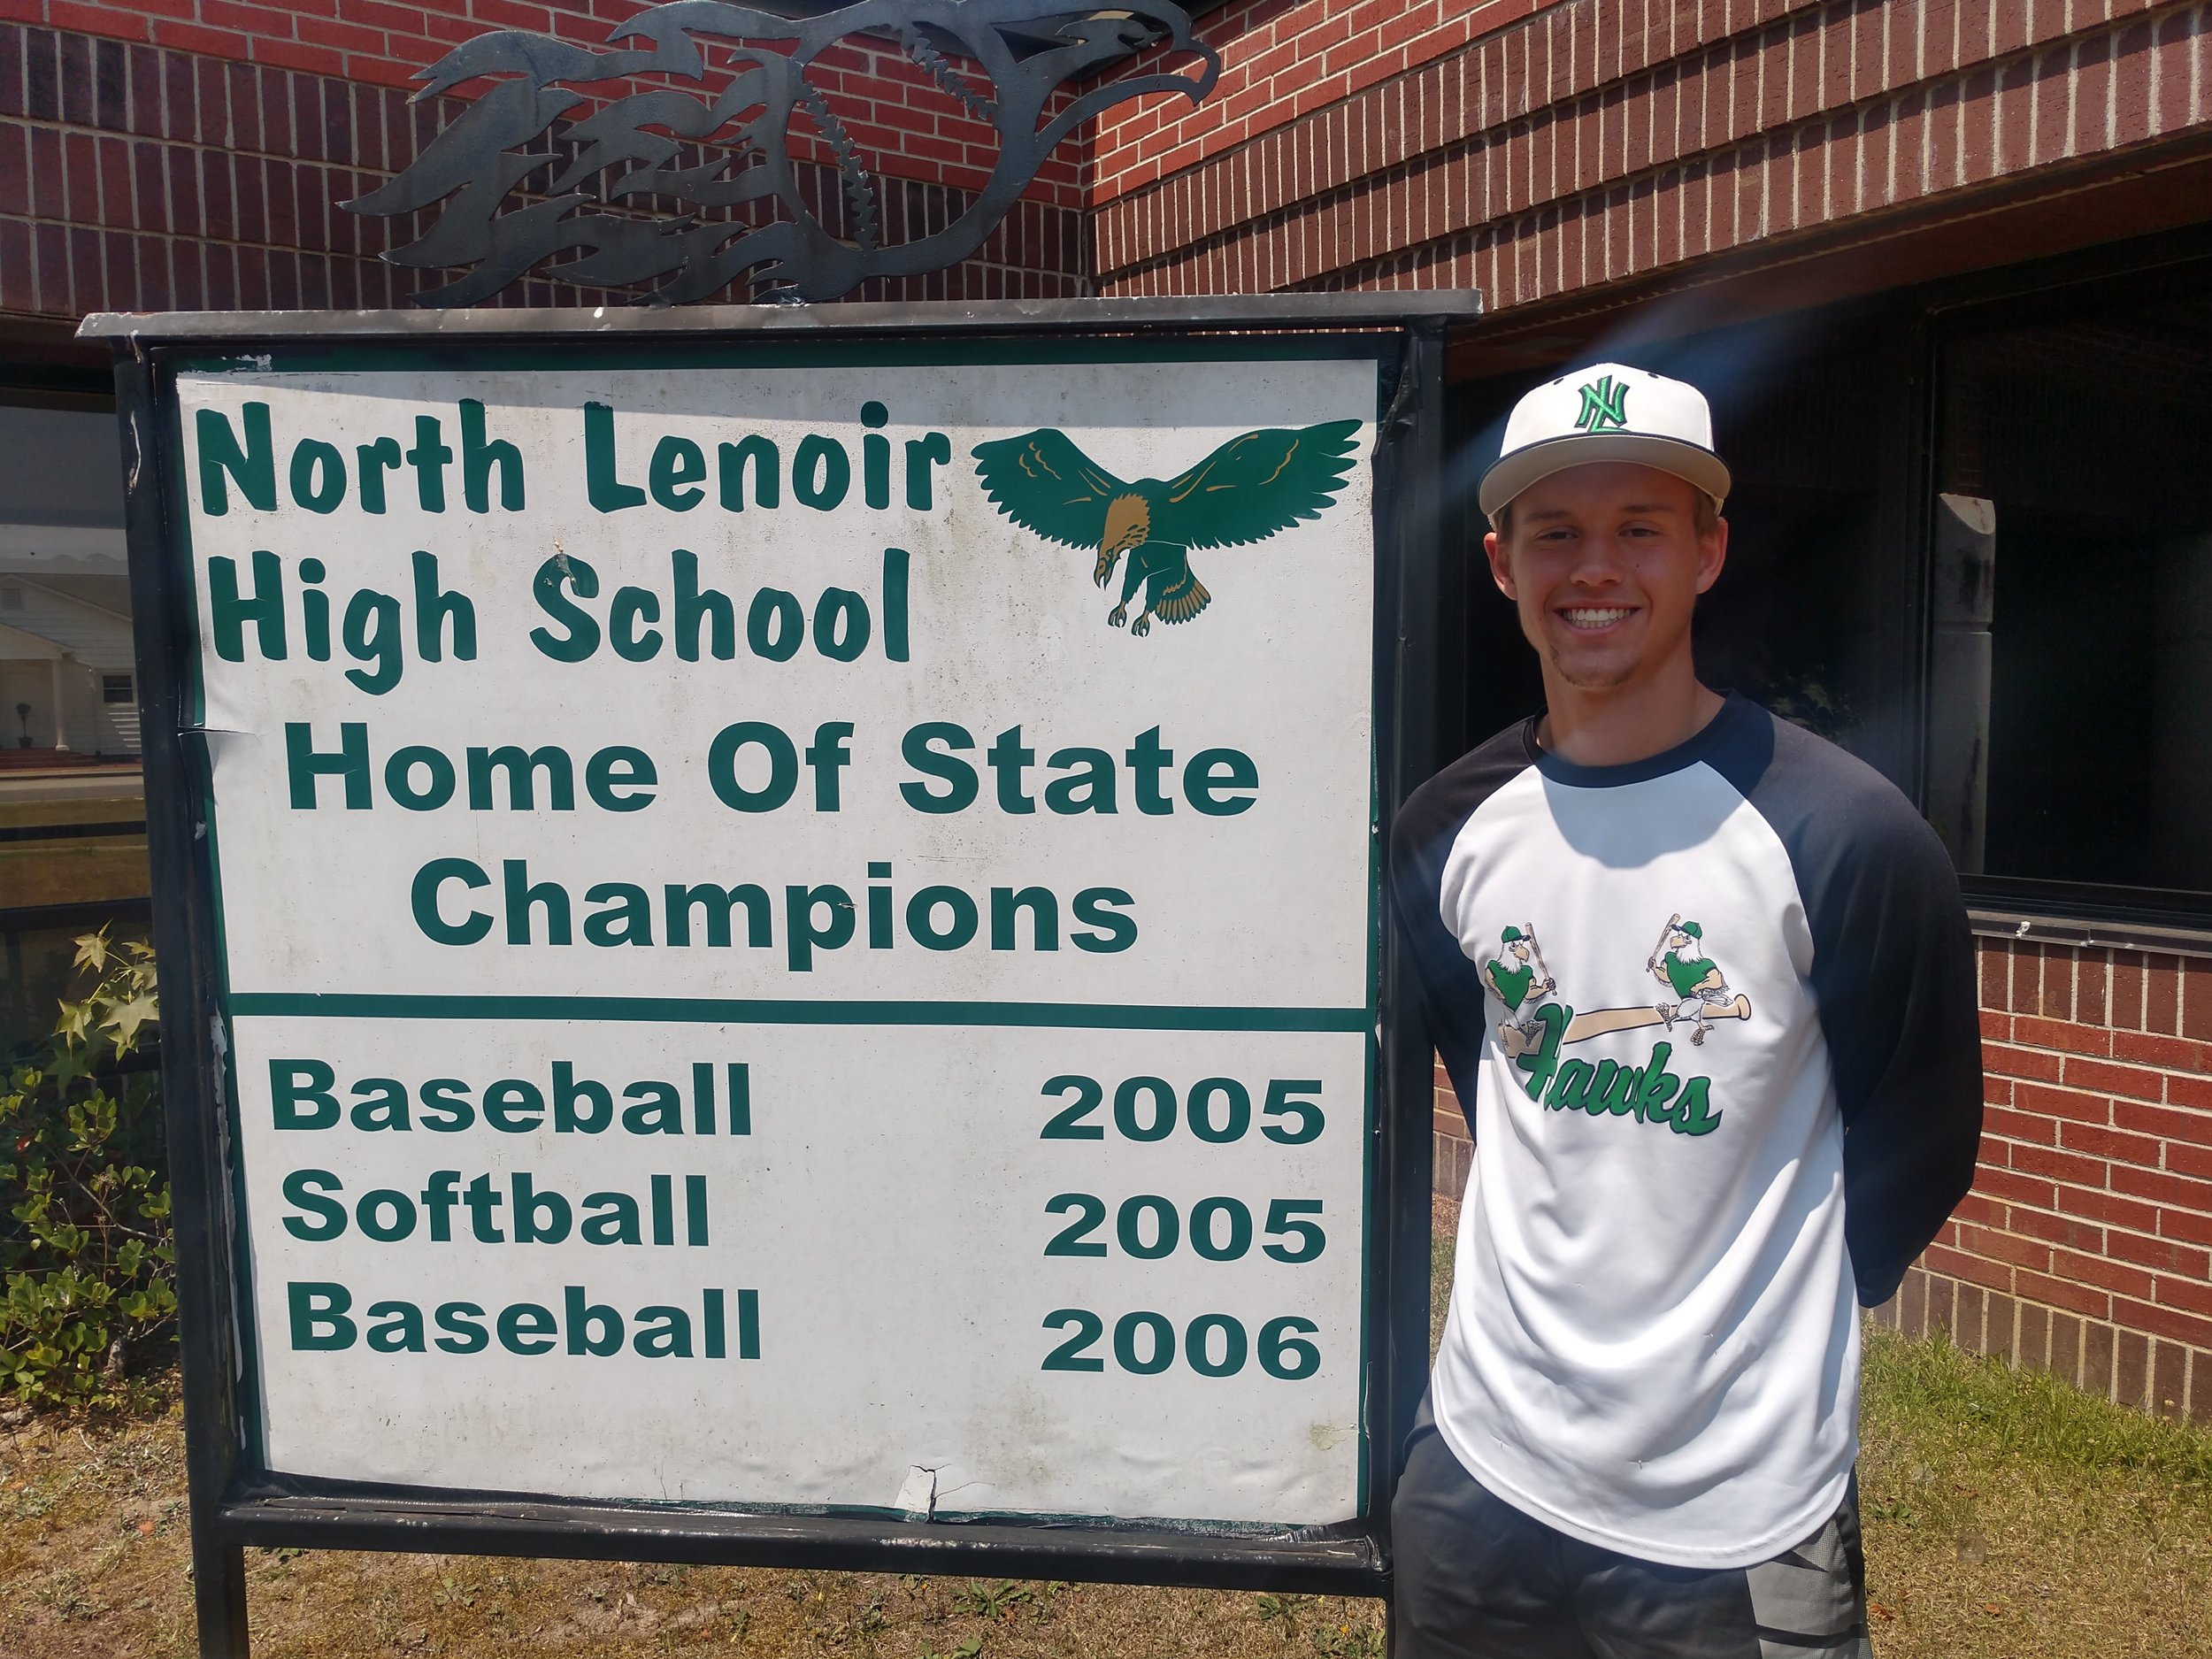 North Lenoir's Trevor Sears allowed just one walk all season and had a 6-1 record with a 1.12 ERA to take home Pitcher of the Year honors. Photo by Junious Smith III / Neuse News